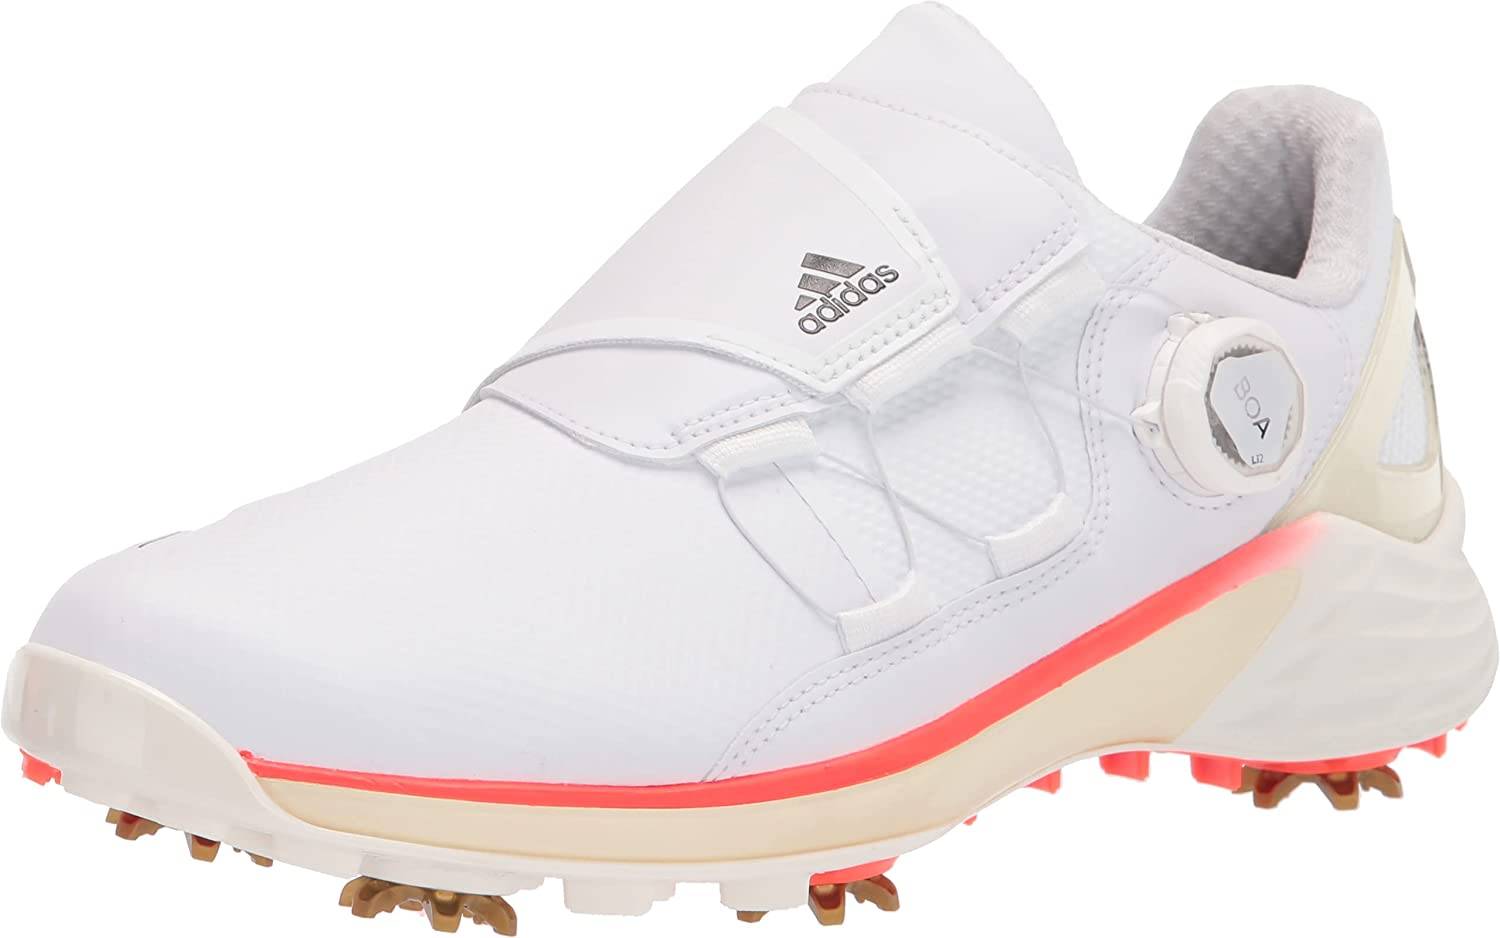 adidas Women's Zg21 Recycled Polyester Shoes Boa Golf Ranking TOP18 Surprise price